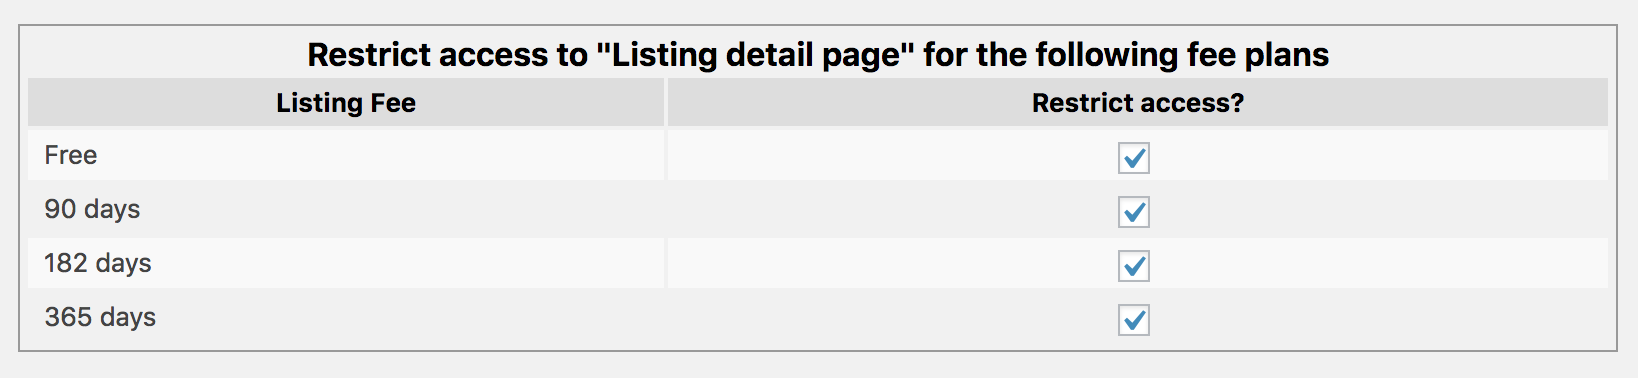 restrict-access-to-details-page-options